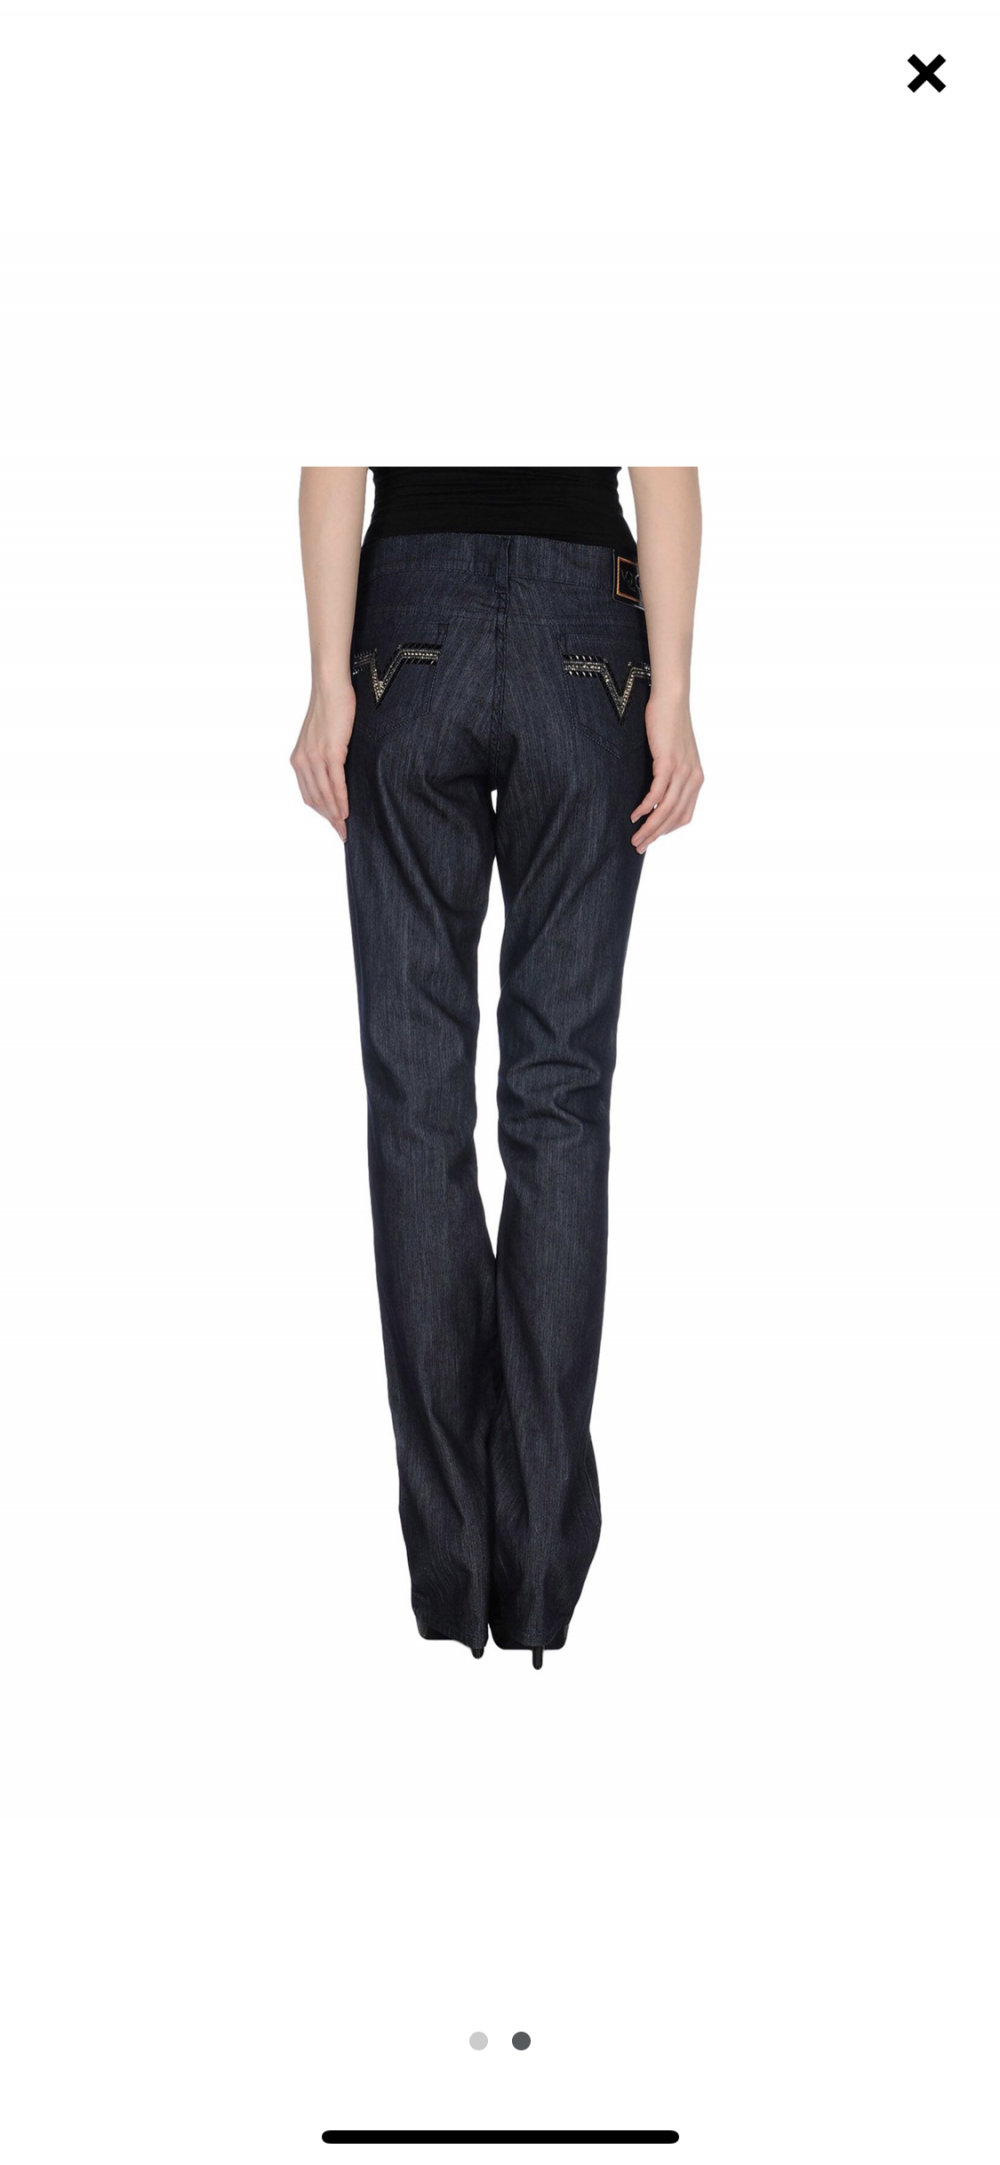 Джинсы Versace Jeans Coutture, размер 46IT